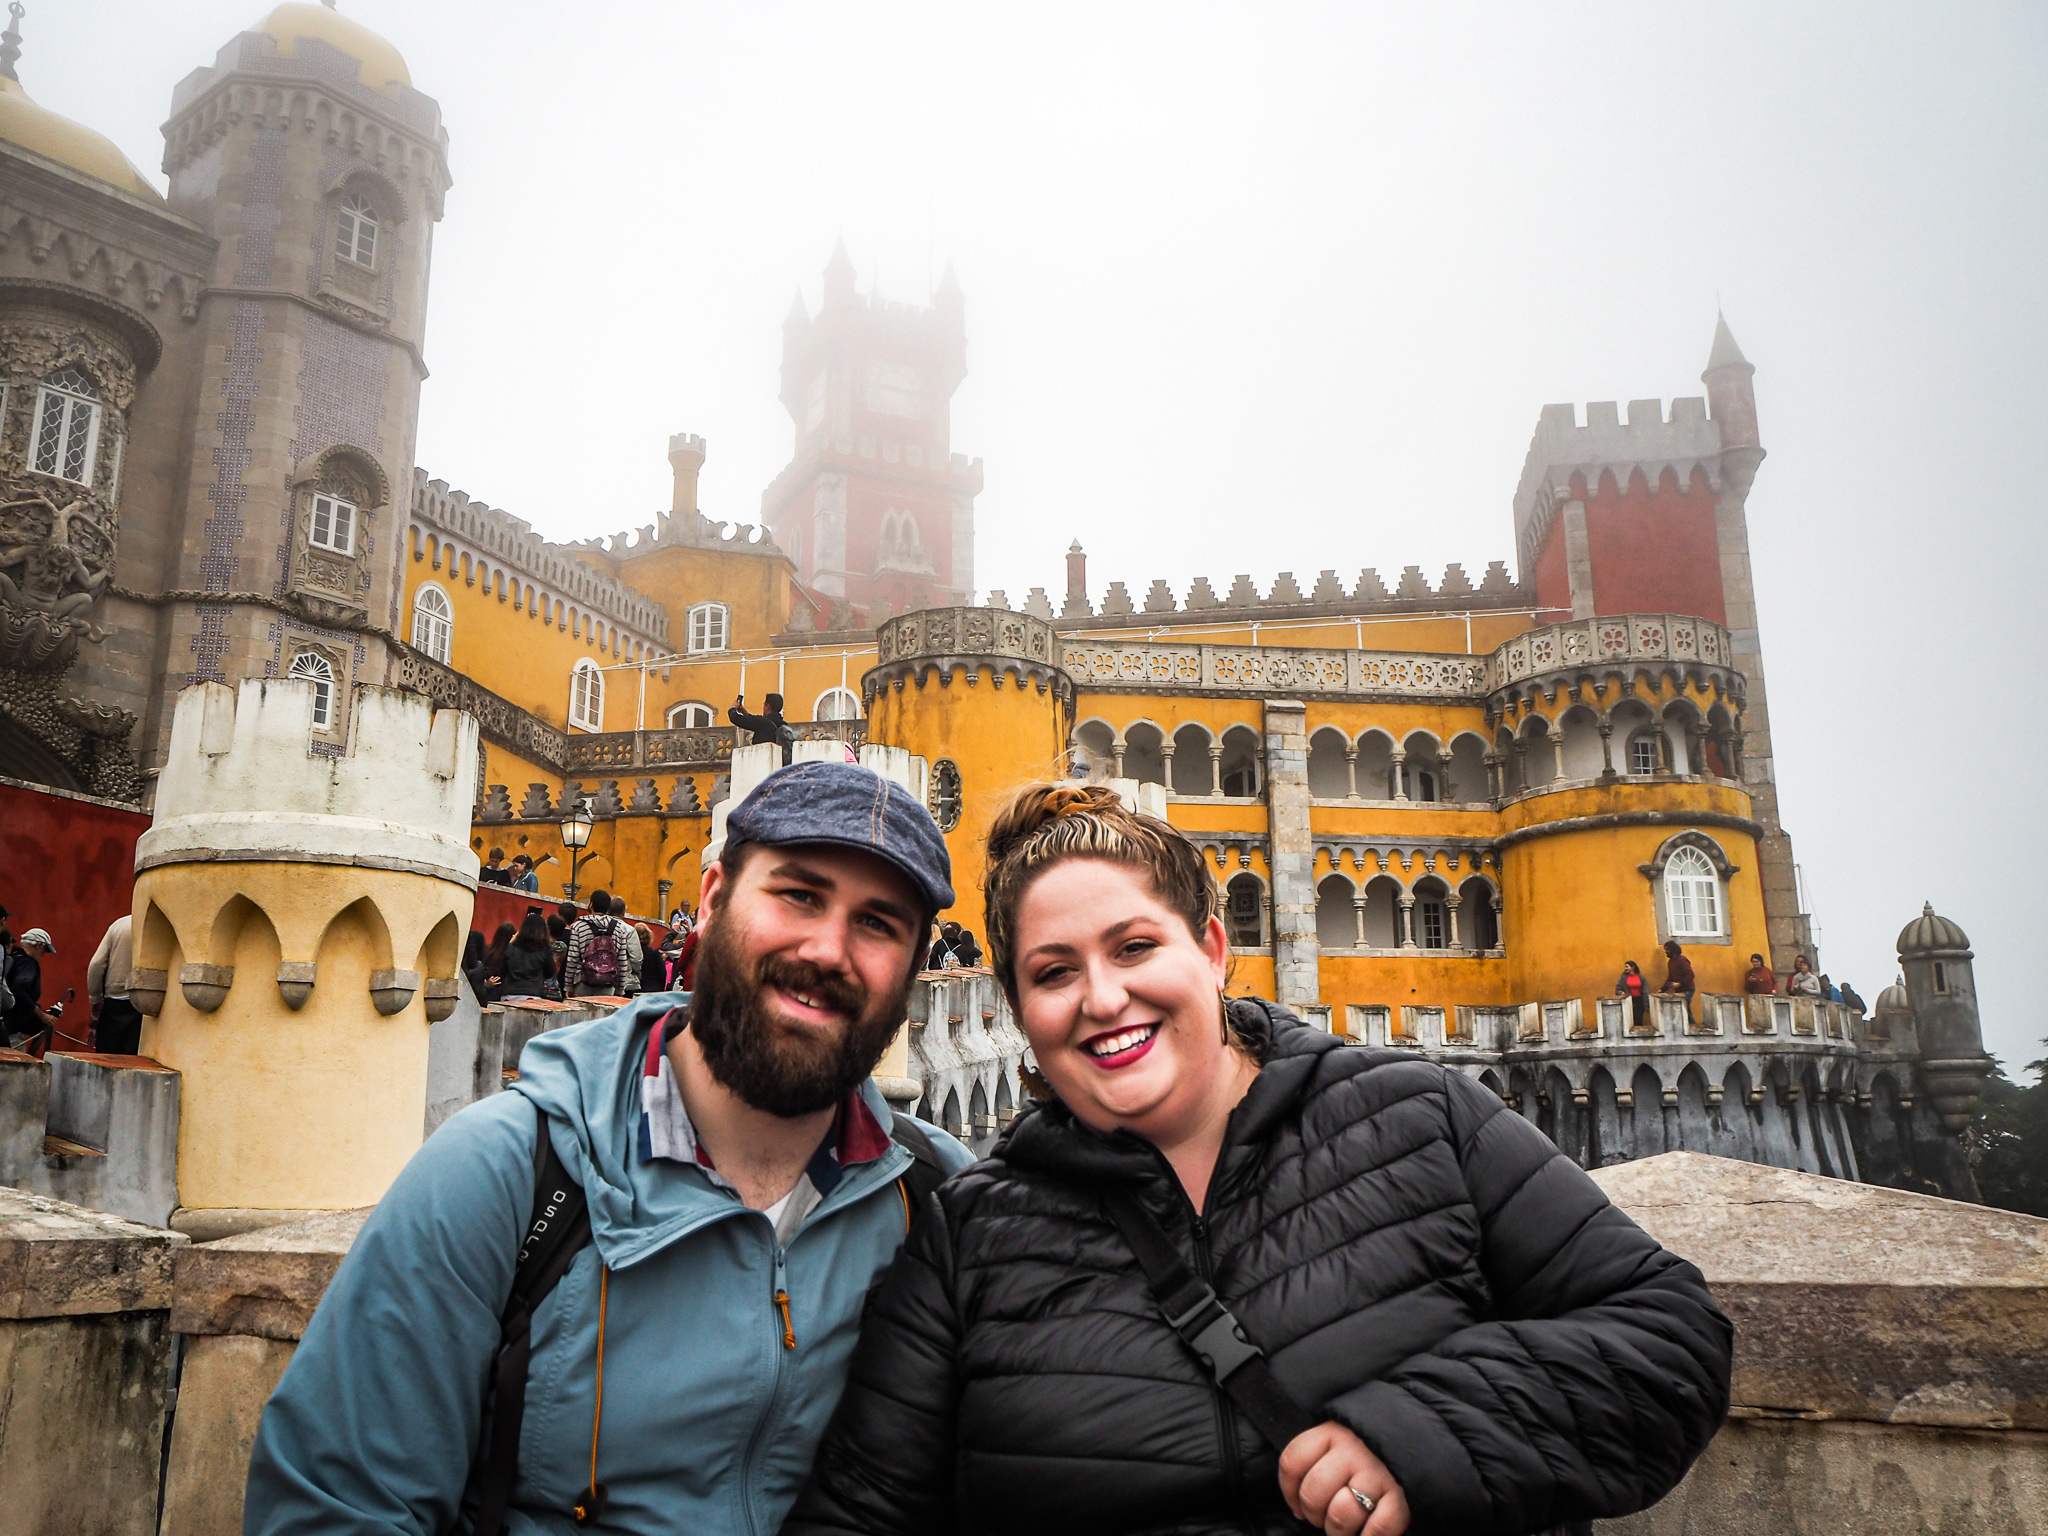 Sorcha and Matt in front of the red, purple and yellow towers of the Moorish Pena Palace